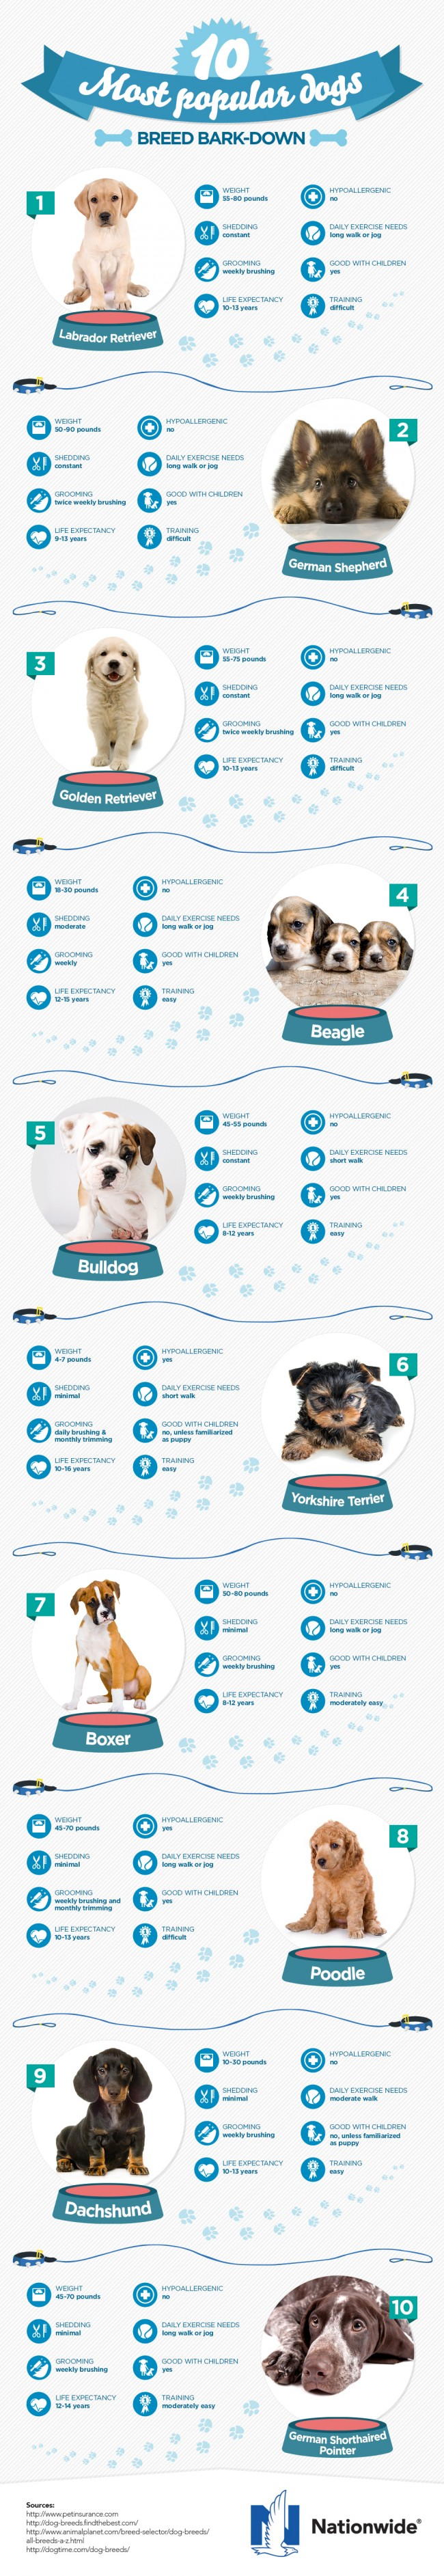 Dog Breed Bark-down: The 10 Most Popular Dogs